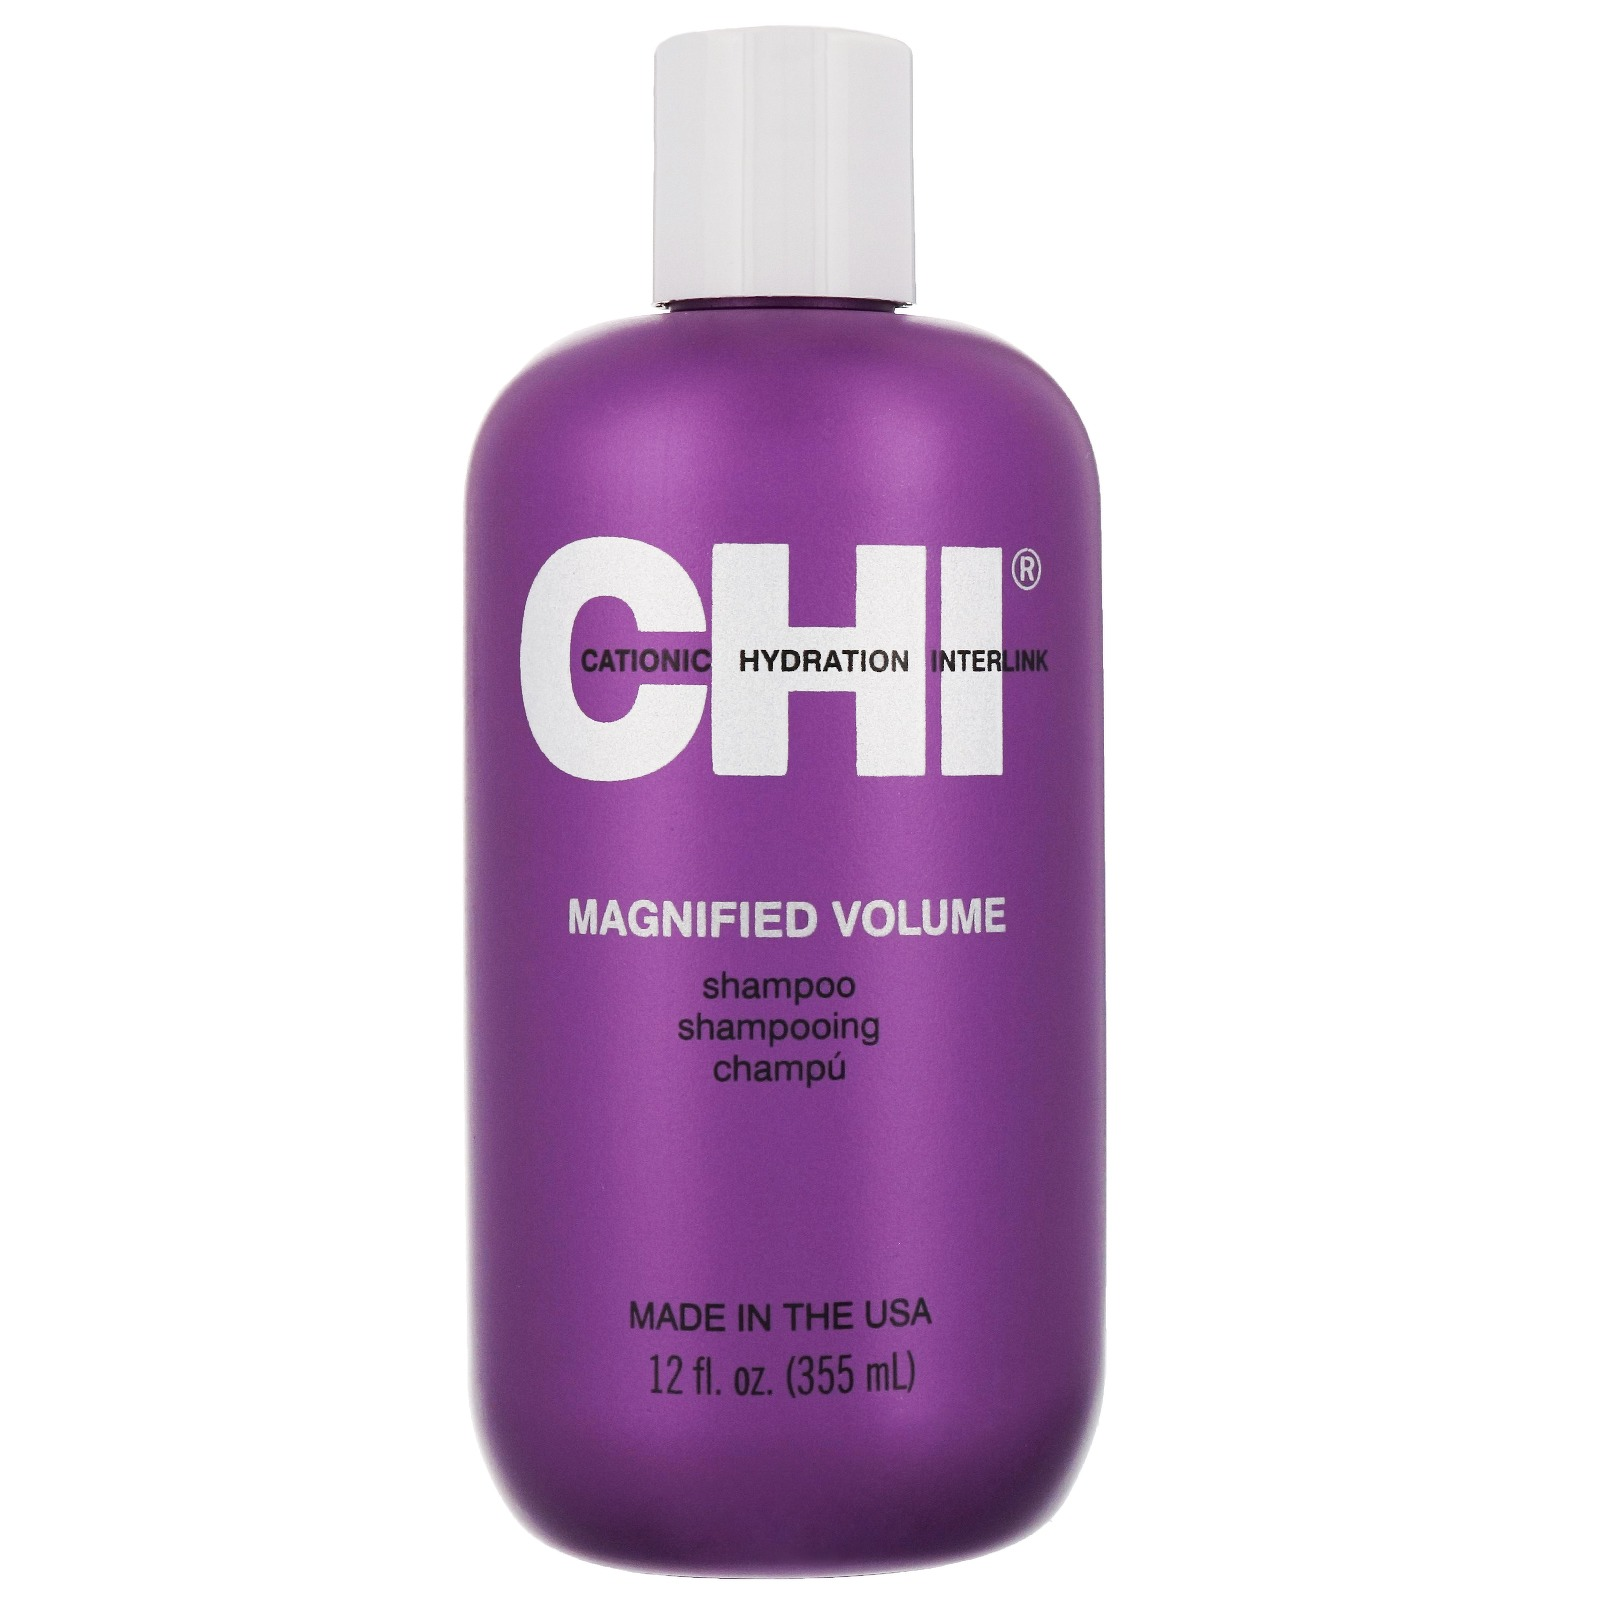 CHI Maintain. Repair. Protect. Magnified Volume Shampoo 355ml